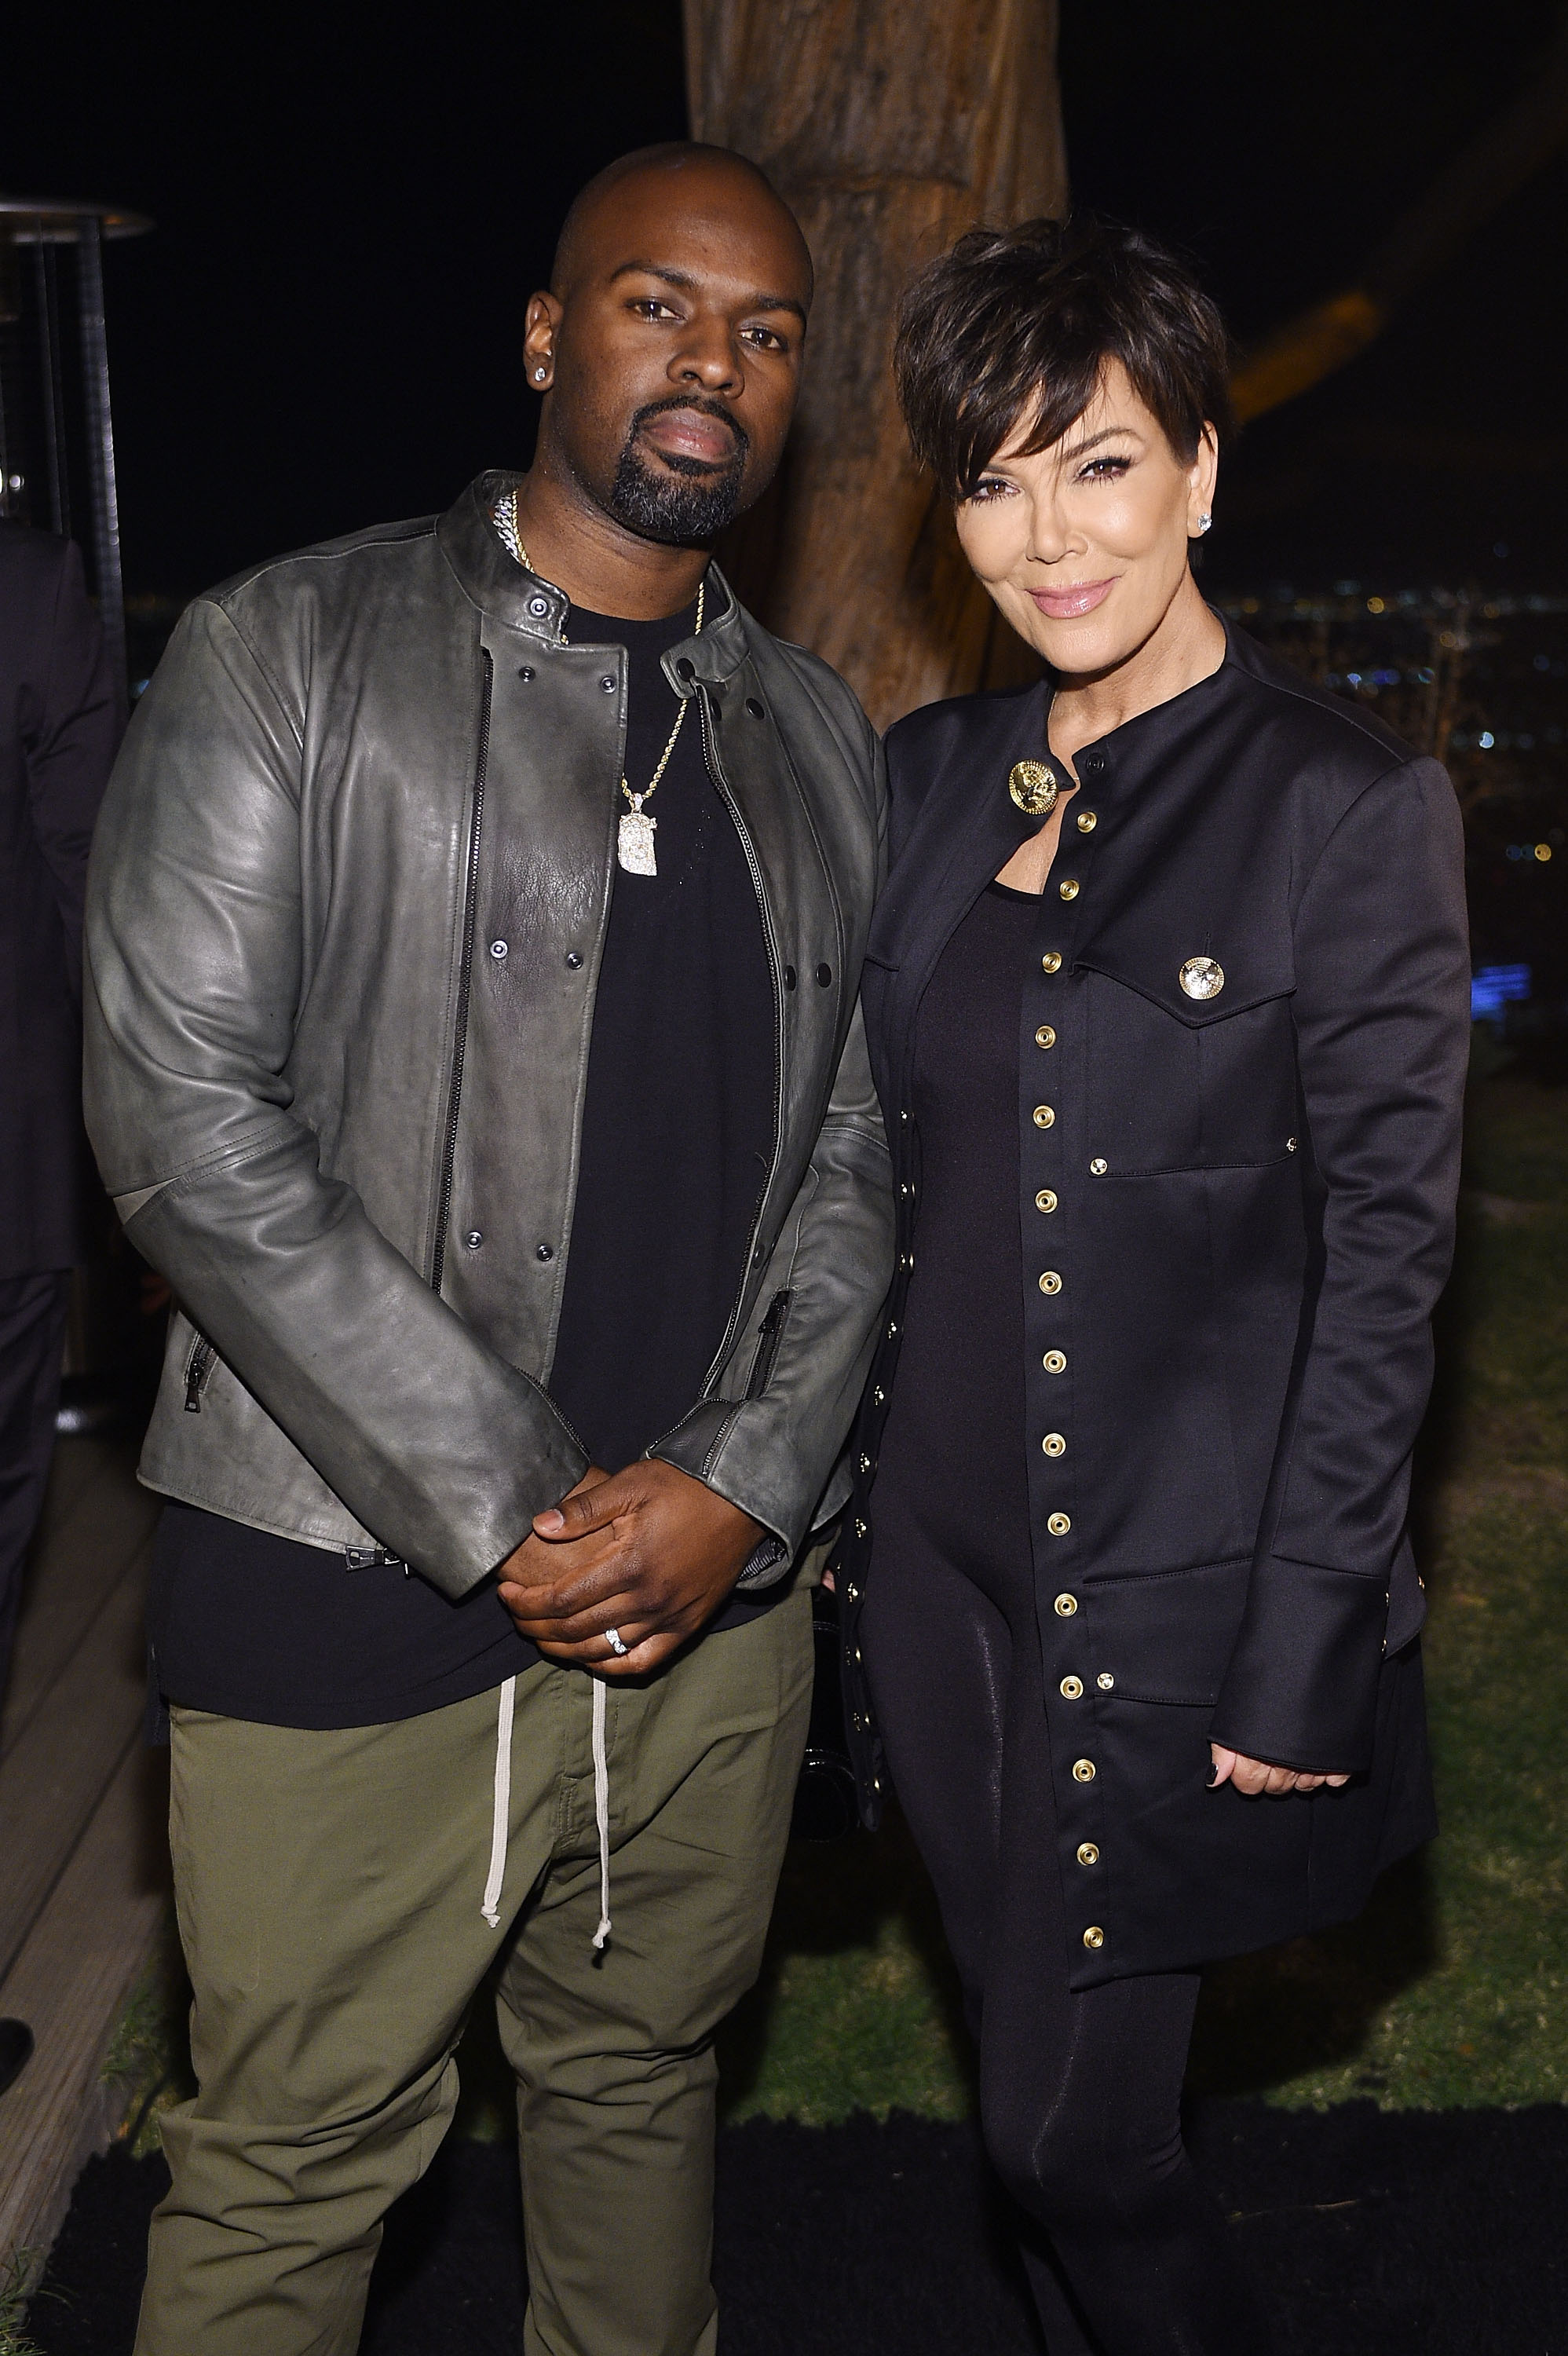 Kris Jenner Engaged to Much Younger Boyfriend Corey Gamble